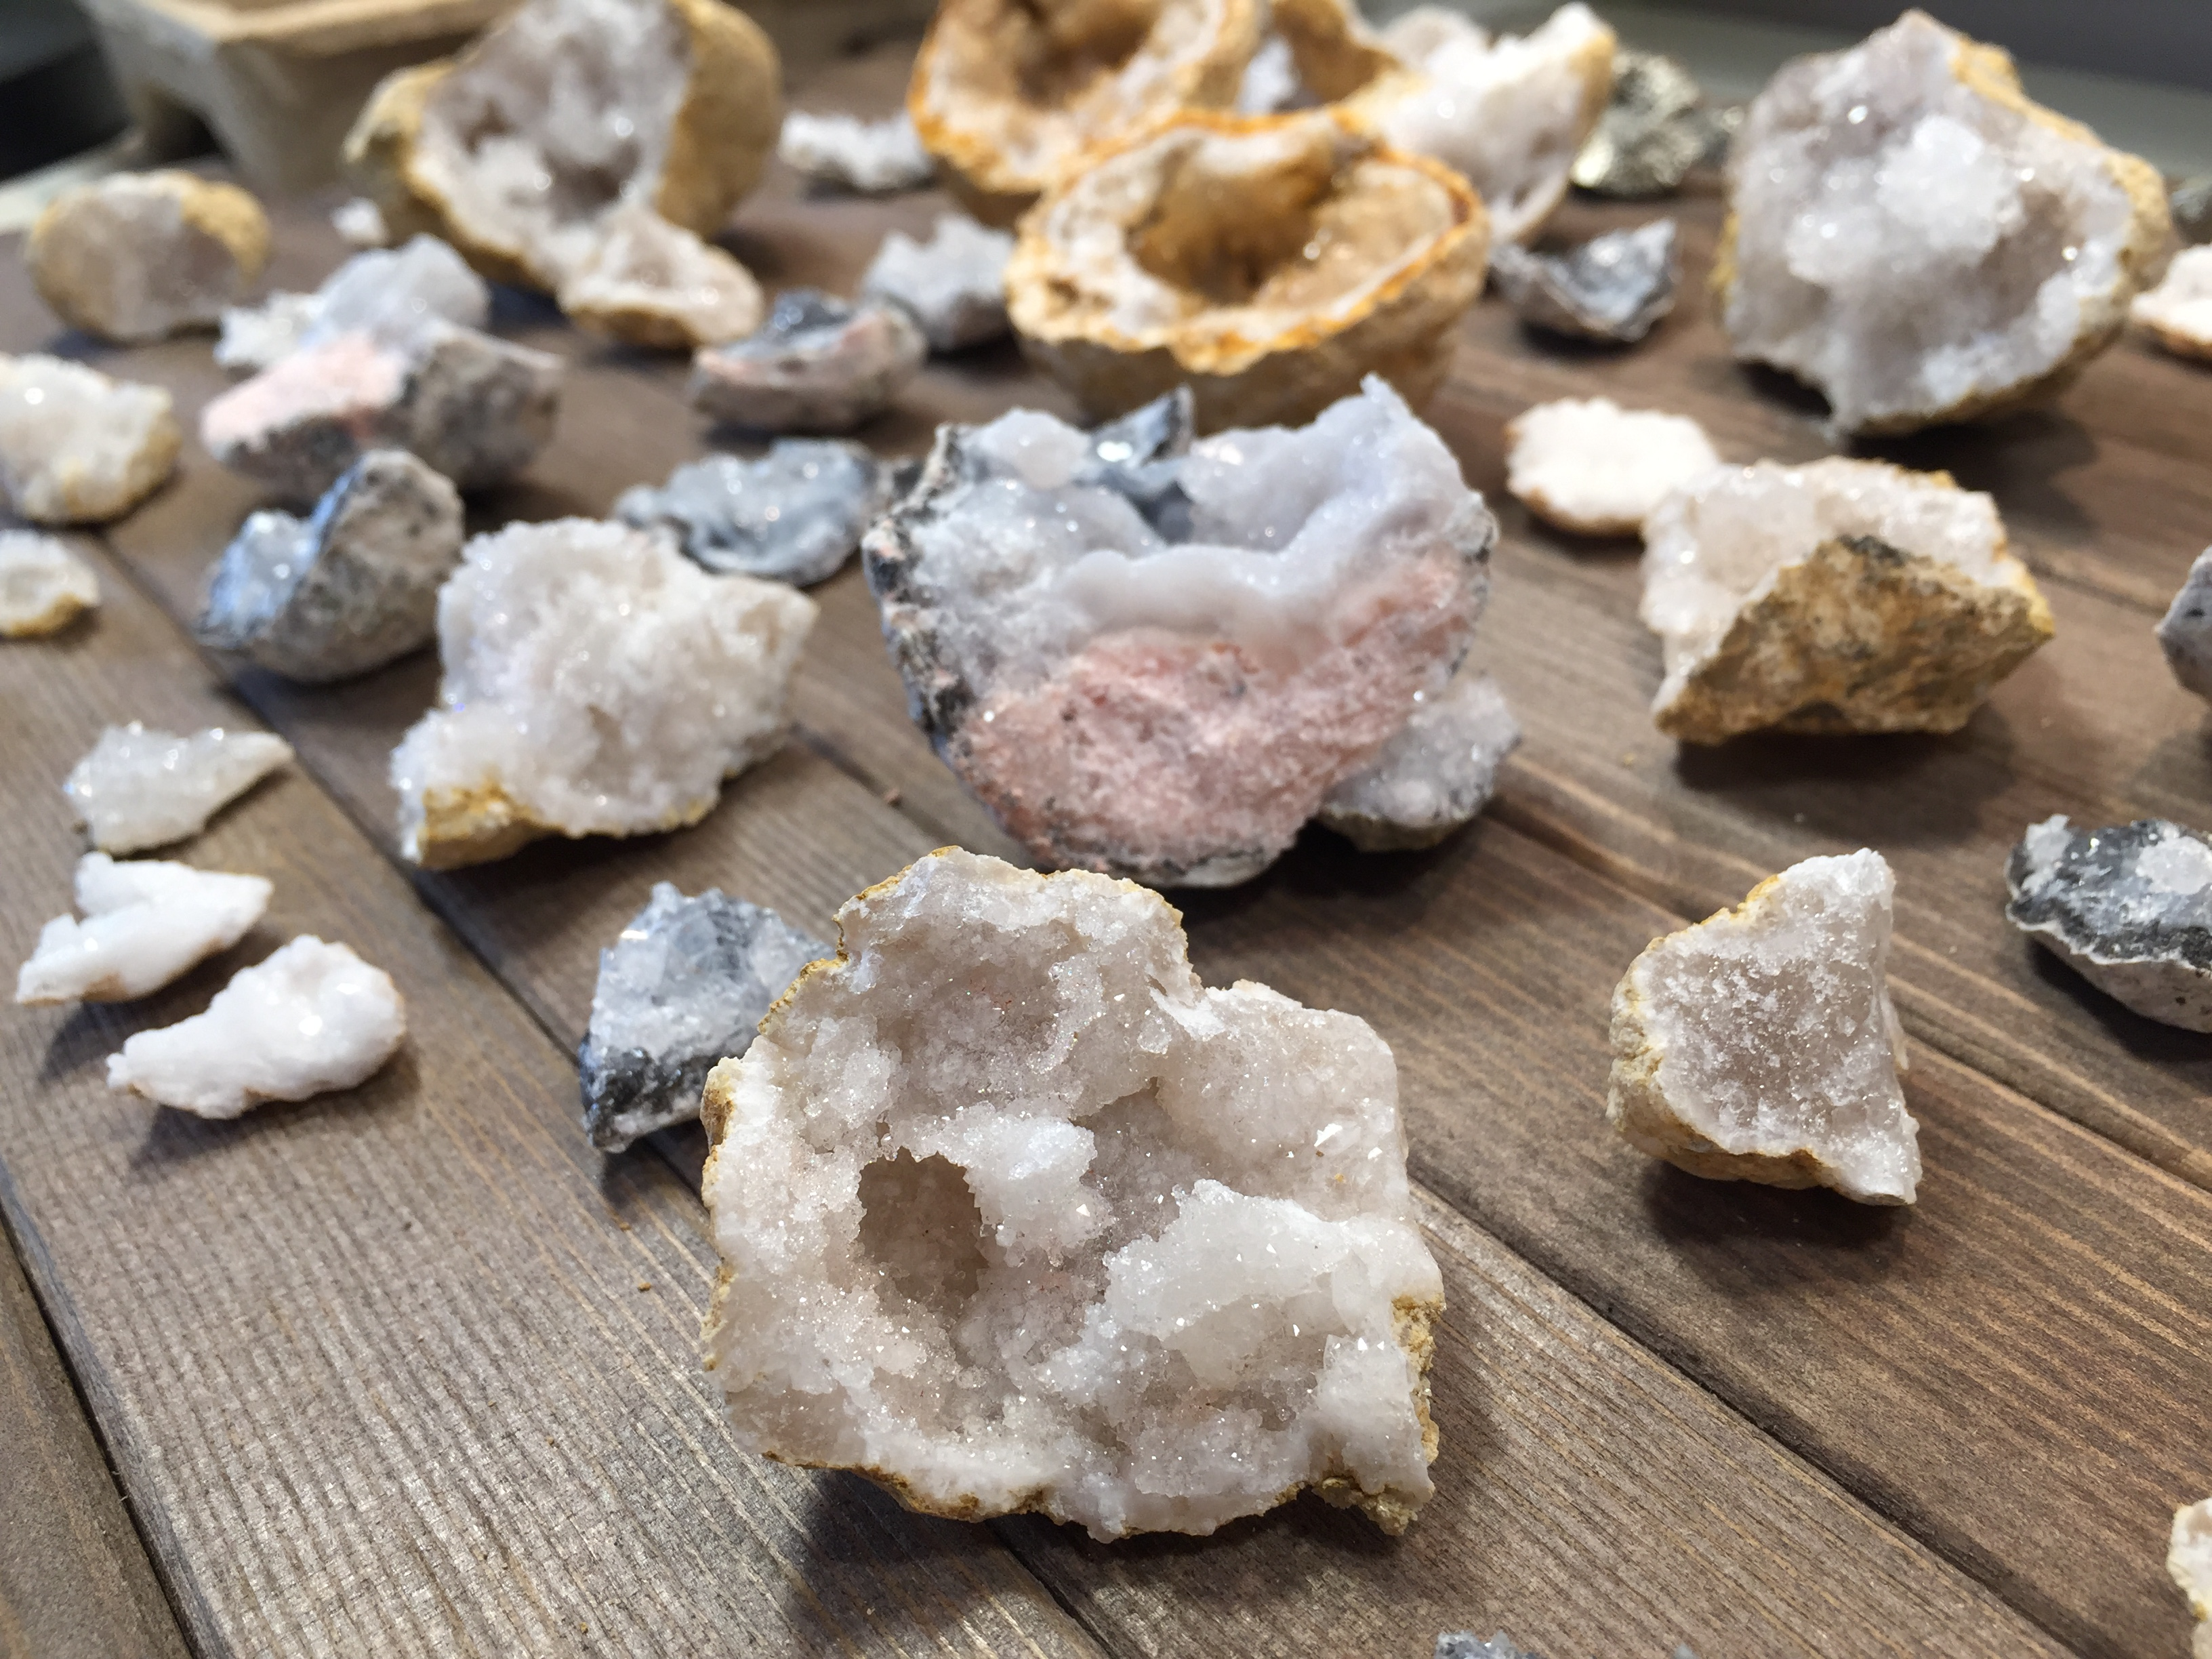 What's Inside Geodes?